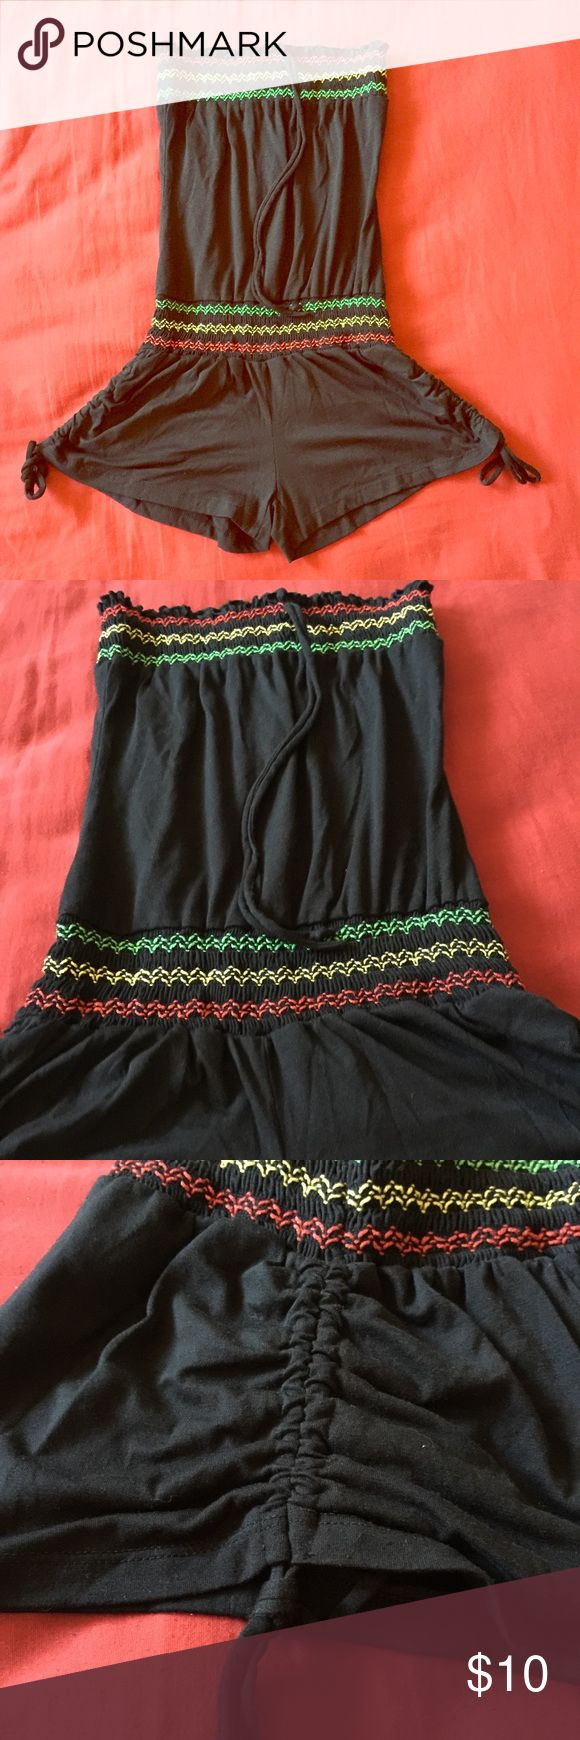 Girl's Rasta Romper Worn once! No damages. This is like a OneSize but it'll fit from girl's size 12-16. It's cute for a beach cover up too! Dresses